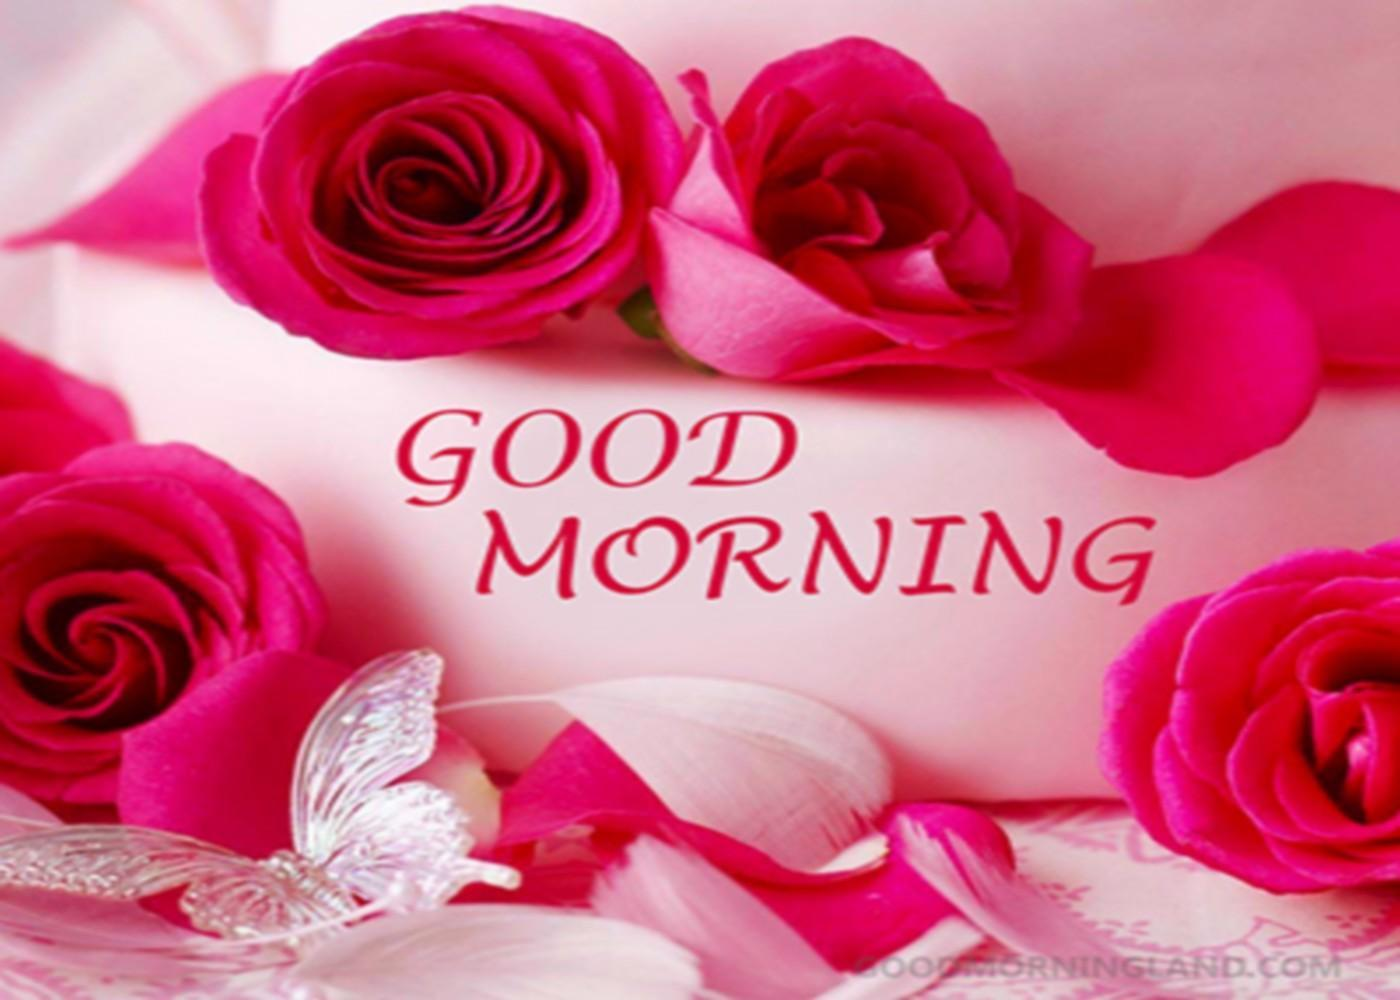 Good Morning Flowers Images GIF for Android - APK Download